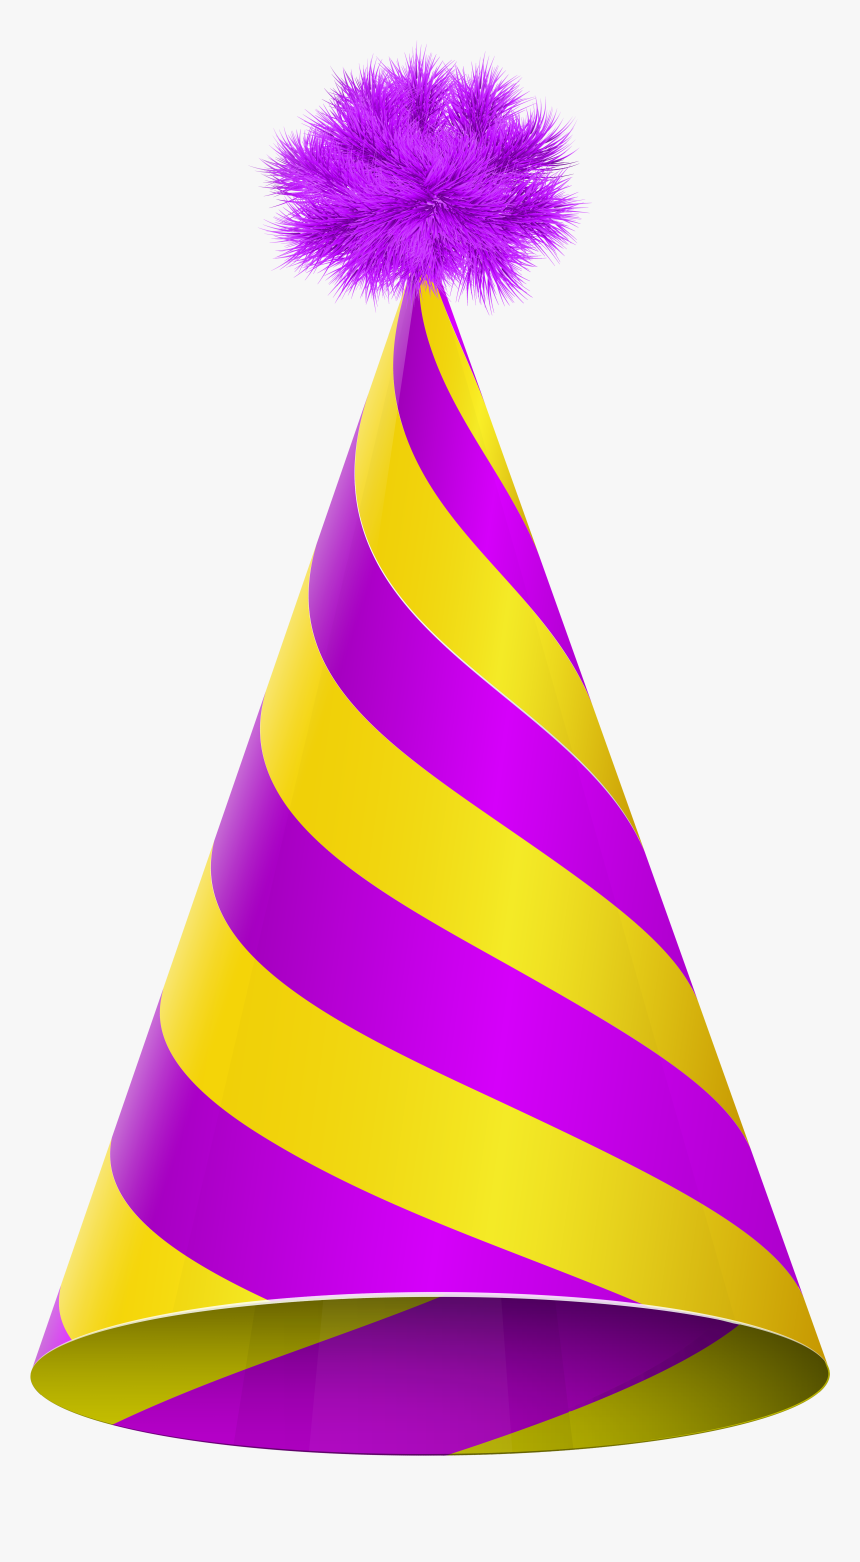 Party Hat Purple Yellow Transparent Png Clip Art Image - Yellow And Purple Party Hat, Png Download, Free Download